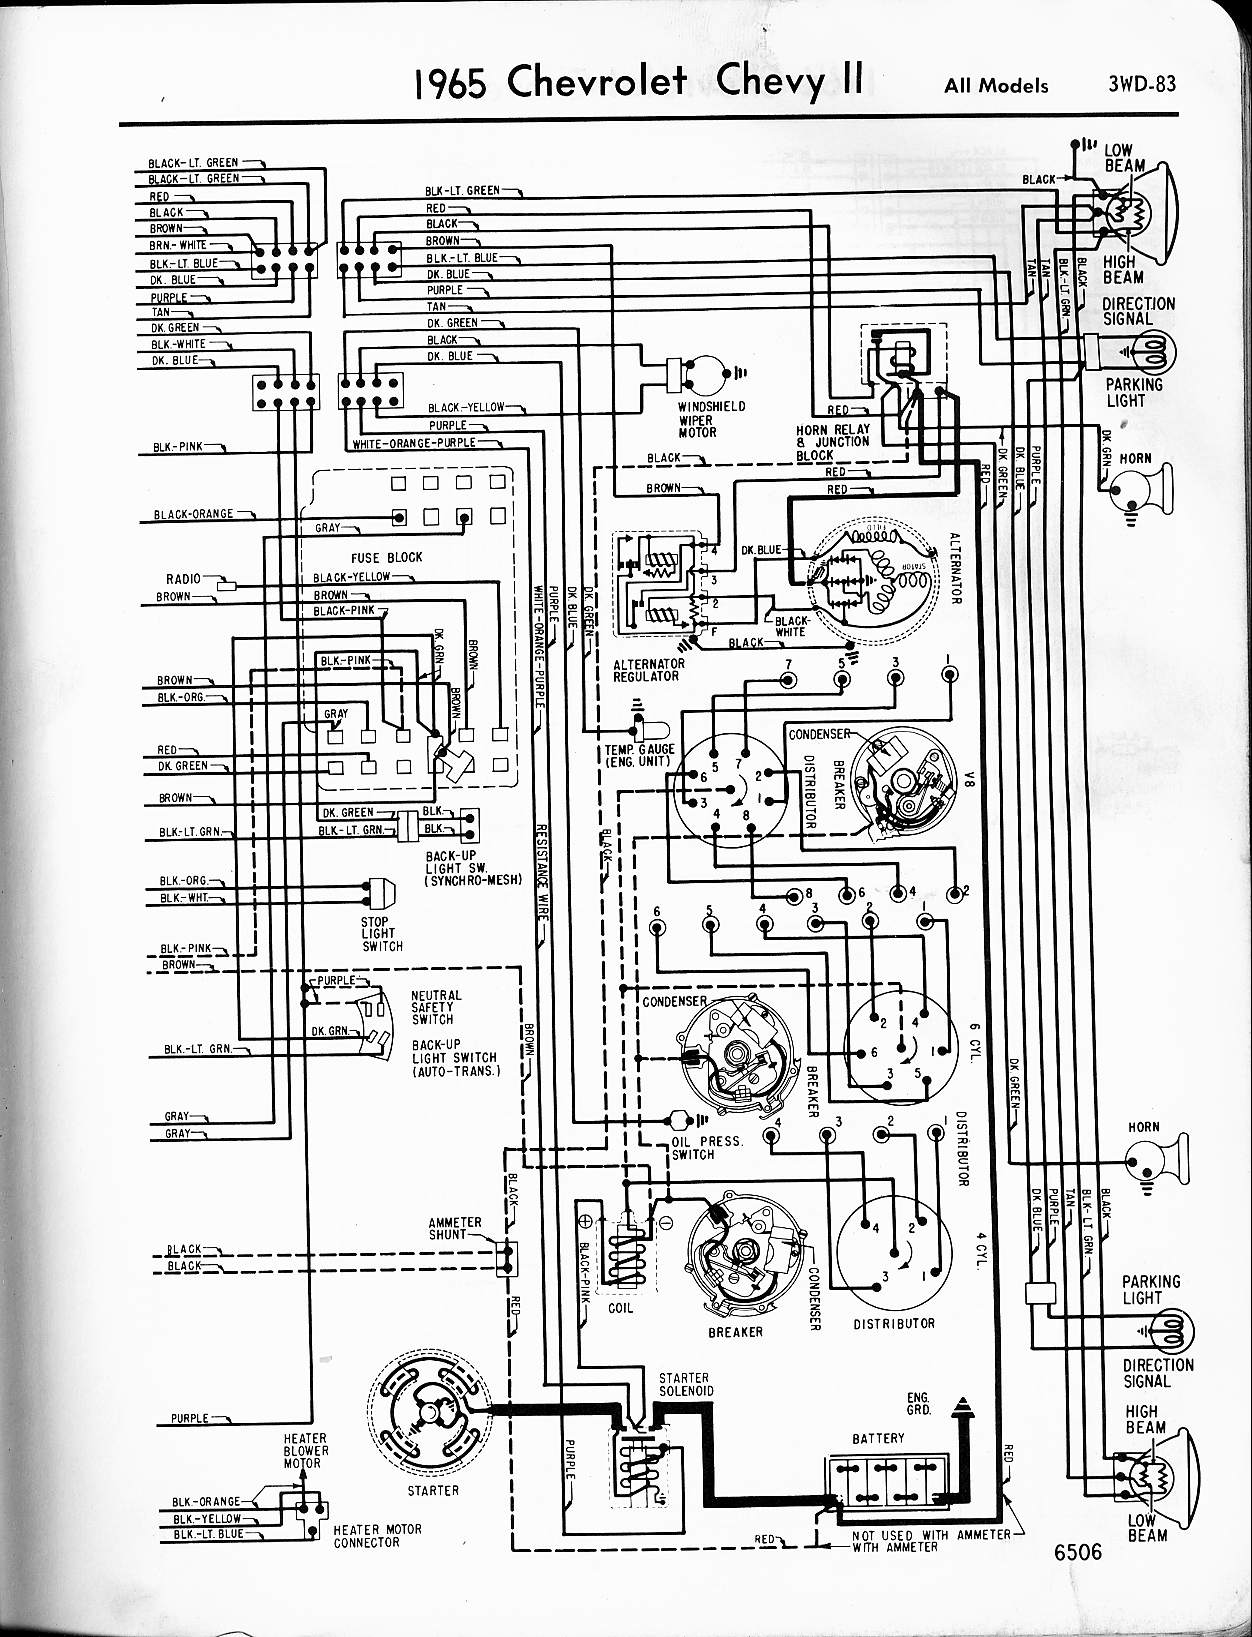 MWireChev65_3WD 083 chevy diagrams 1965 chevy truck turn signal wiring diagram at gsmportal.co